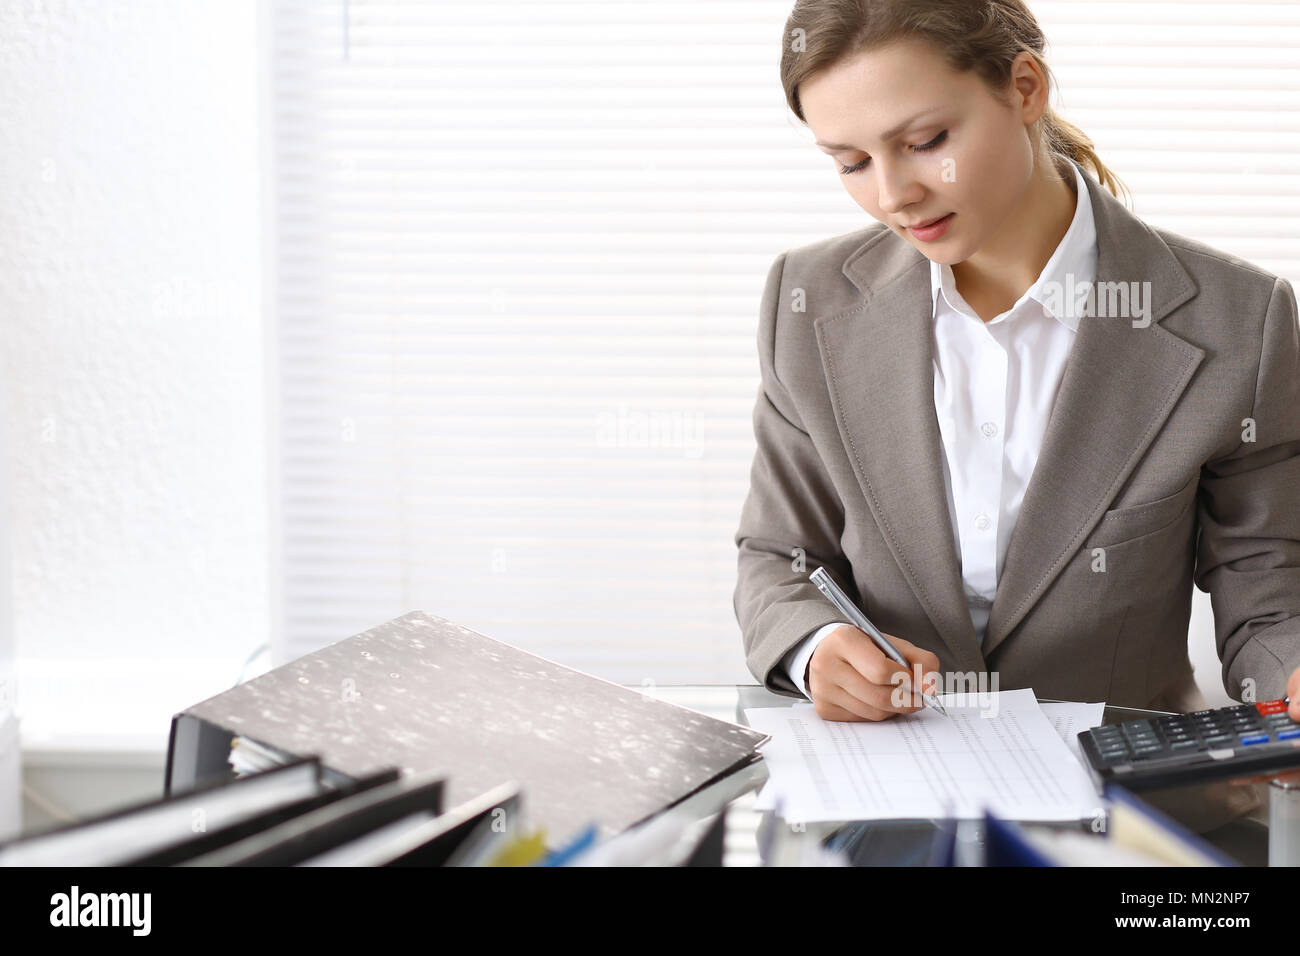 Portrait of female bookkeeper or financial inspector  making report, calculating or checking balance. Copy space area  - Stock Image